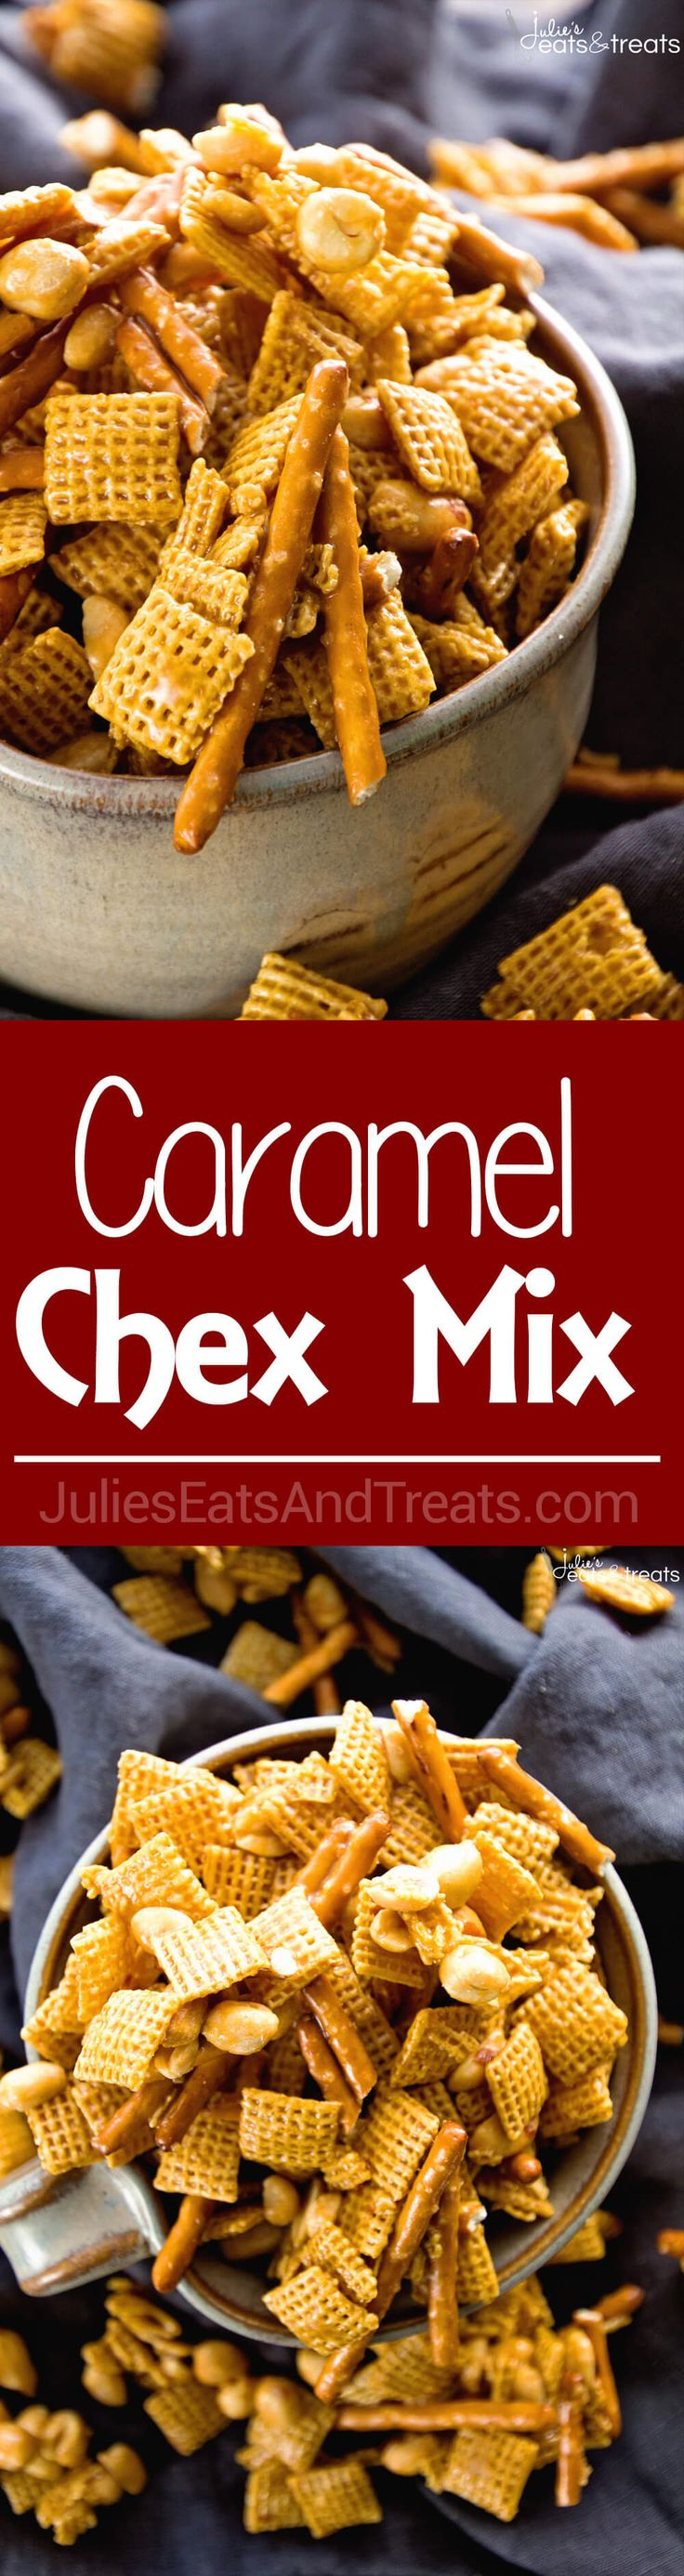 Caramel Chex Mix ~ The Perfect Blend of Sweet & Salty in this Snack Mix! Plus it's Perfect for Parties! Loaded with Chex, Peanuts, Pretzels and Coated in a Caramel! via @julieseats